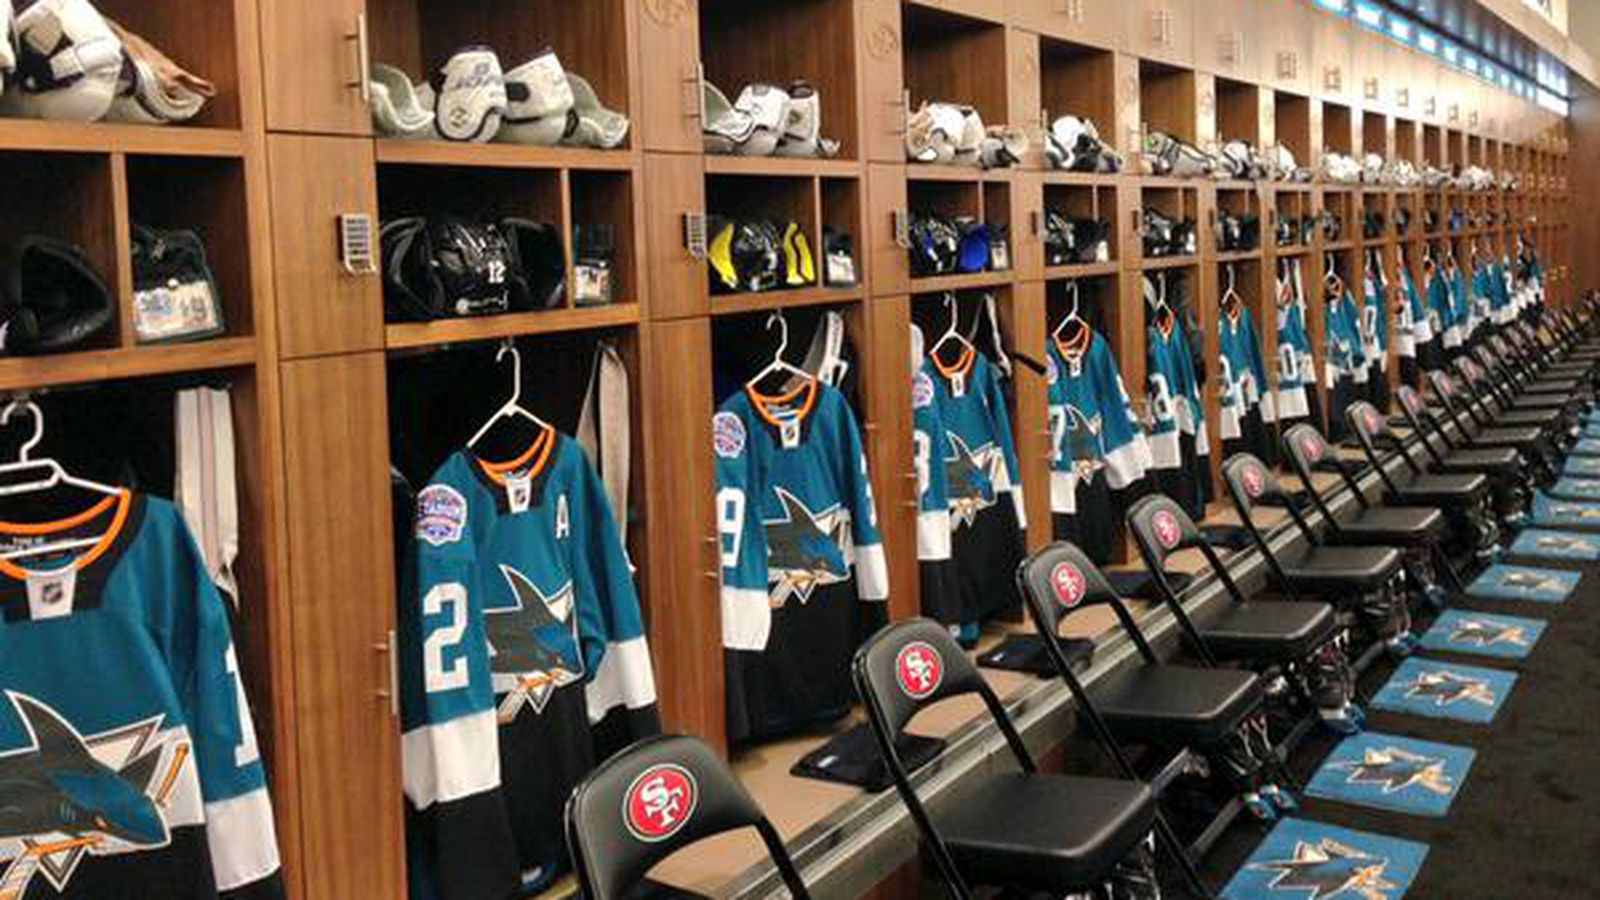 Here S What The Transformed 49ers Locker Room Looks Like